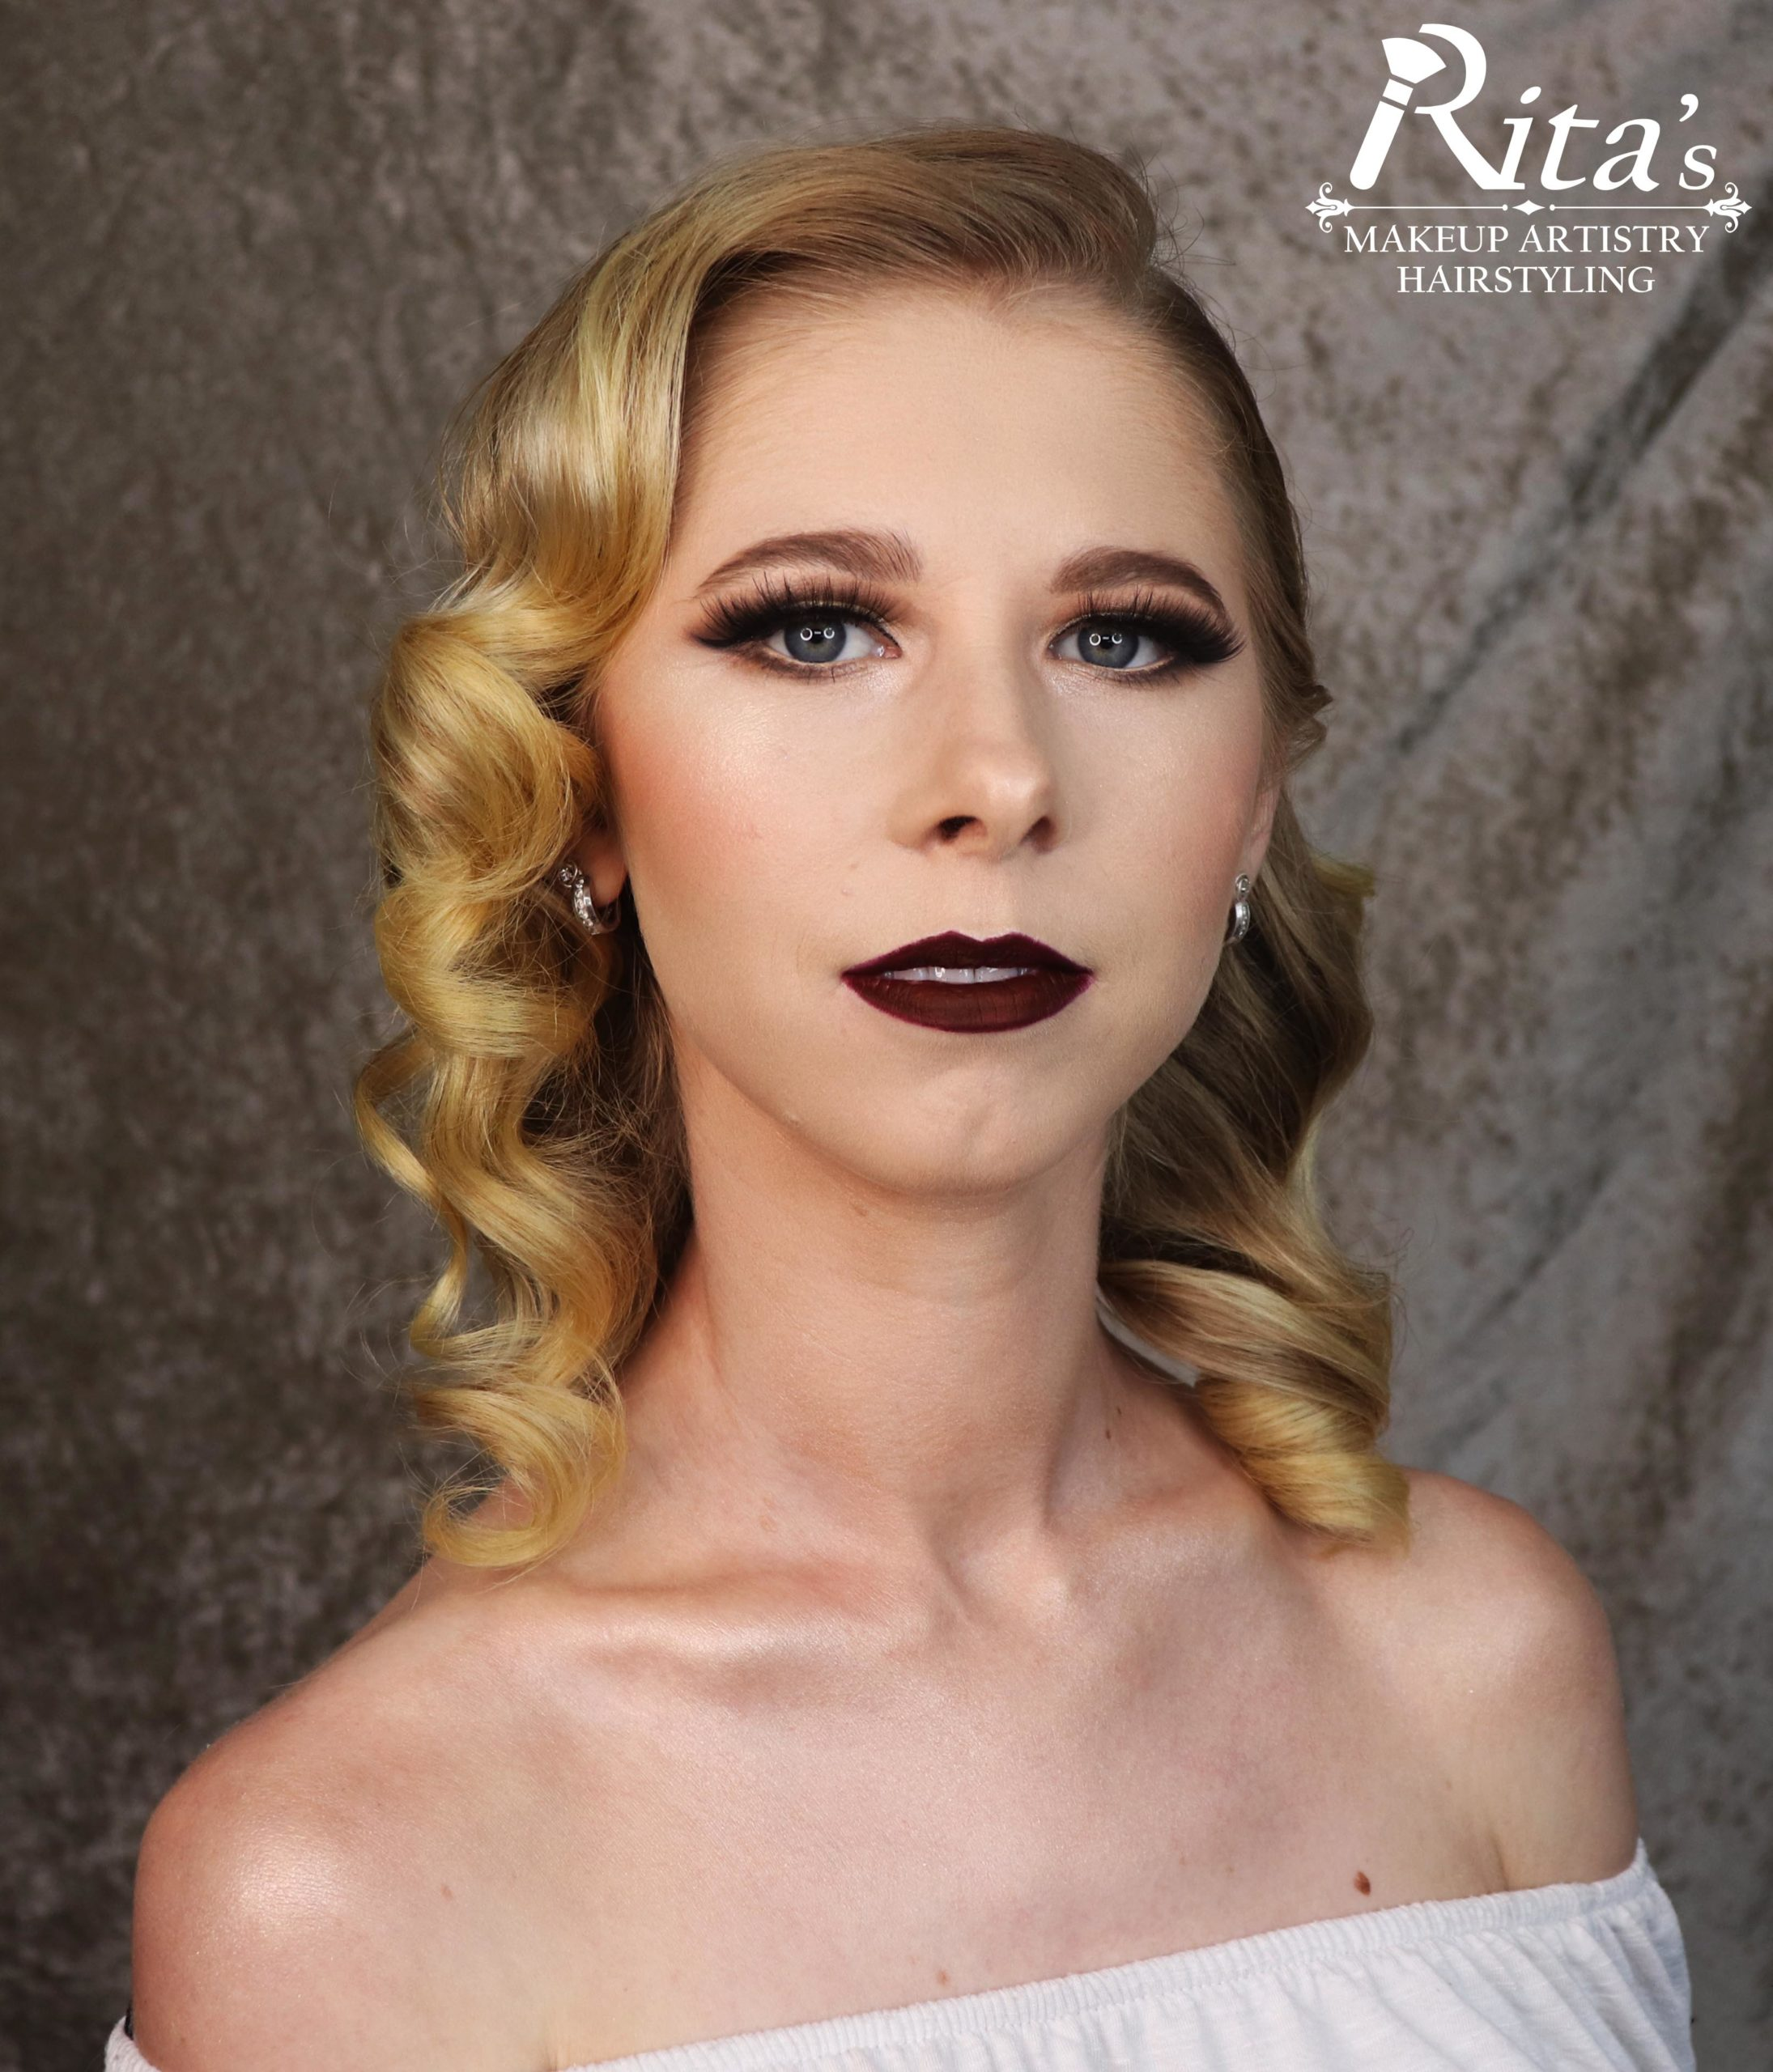 Billie Erin Model with Rita's Makeup Artistry